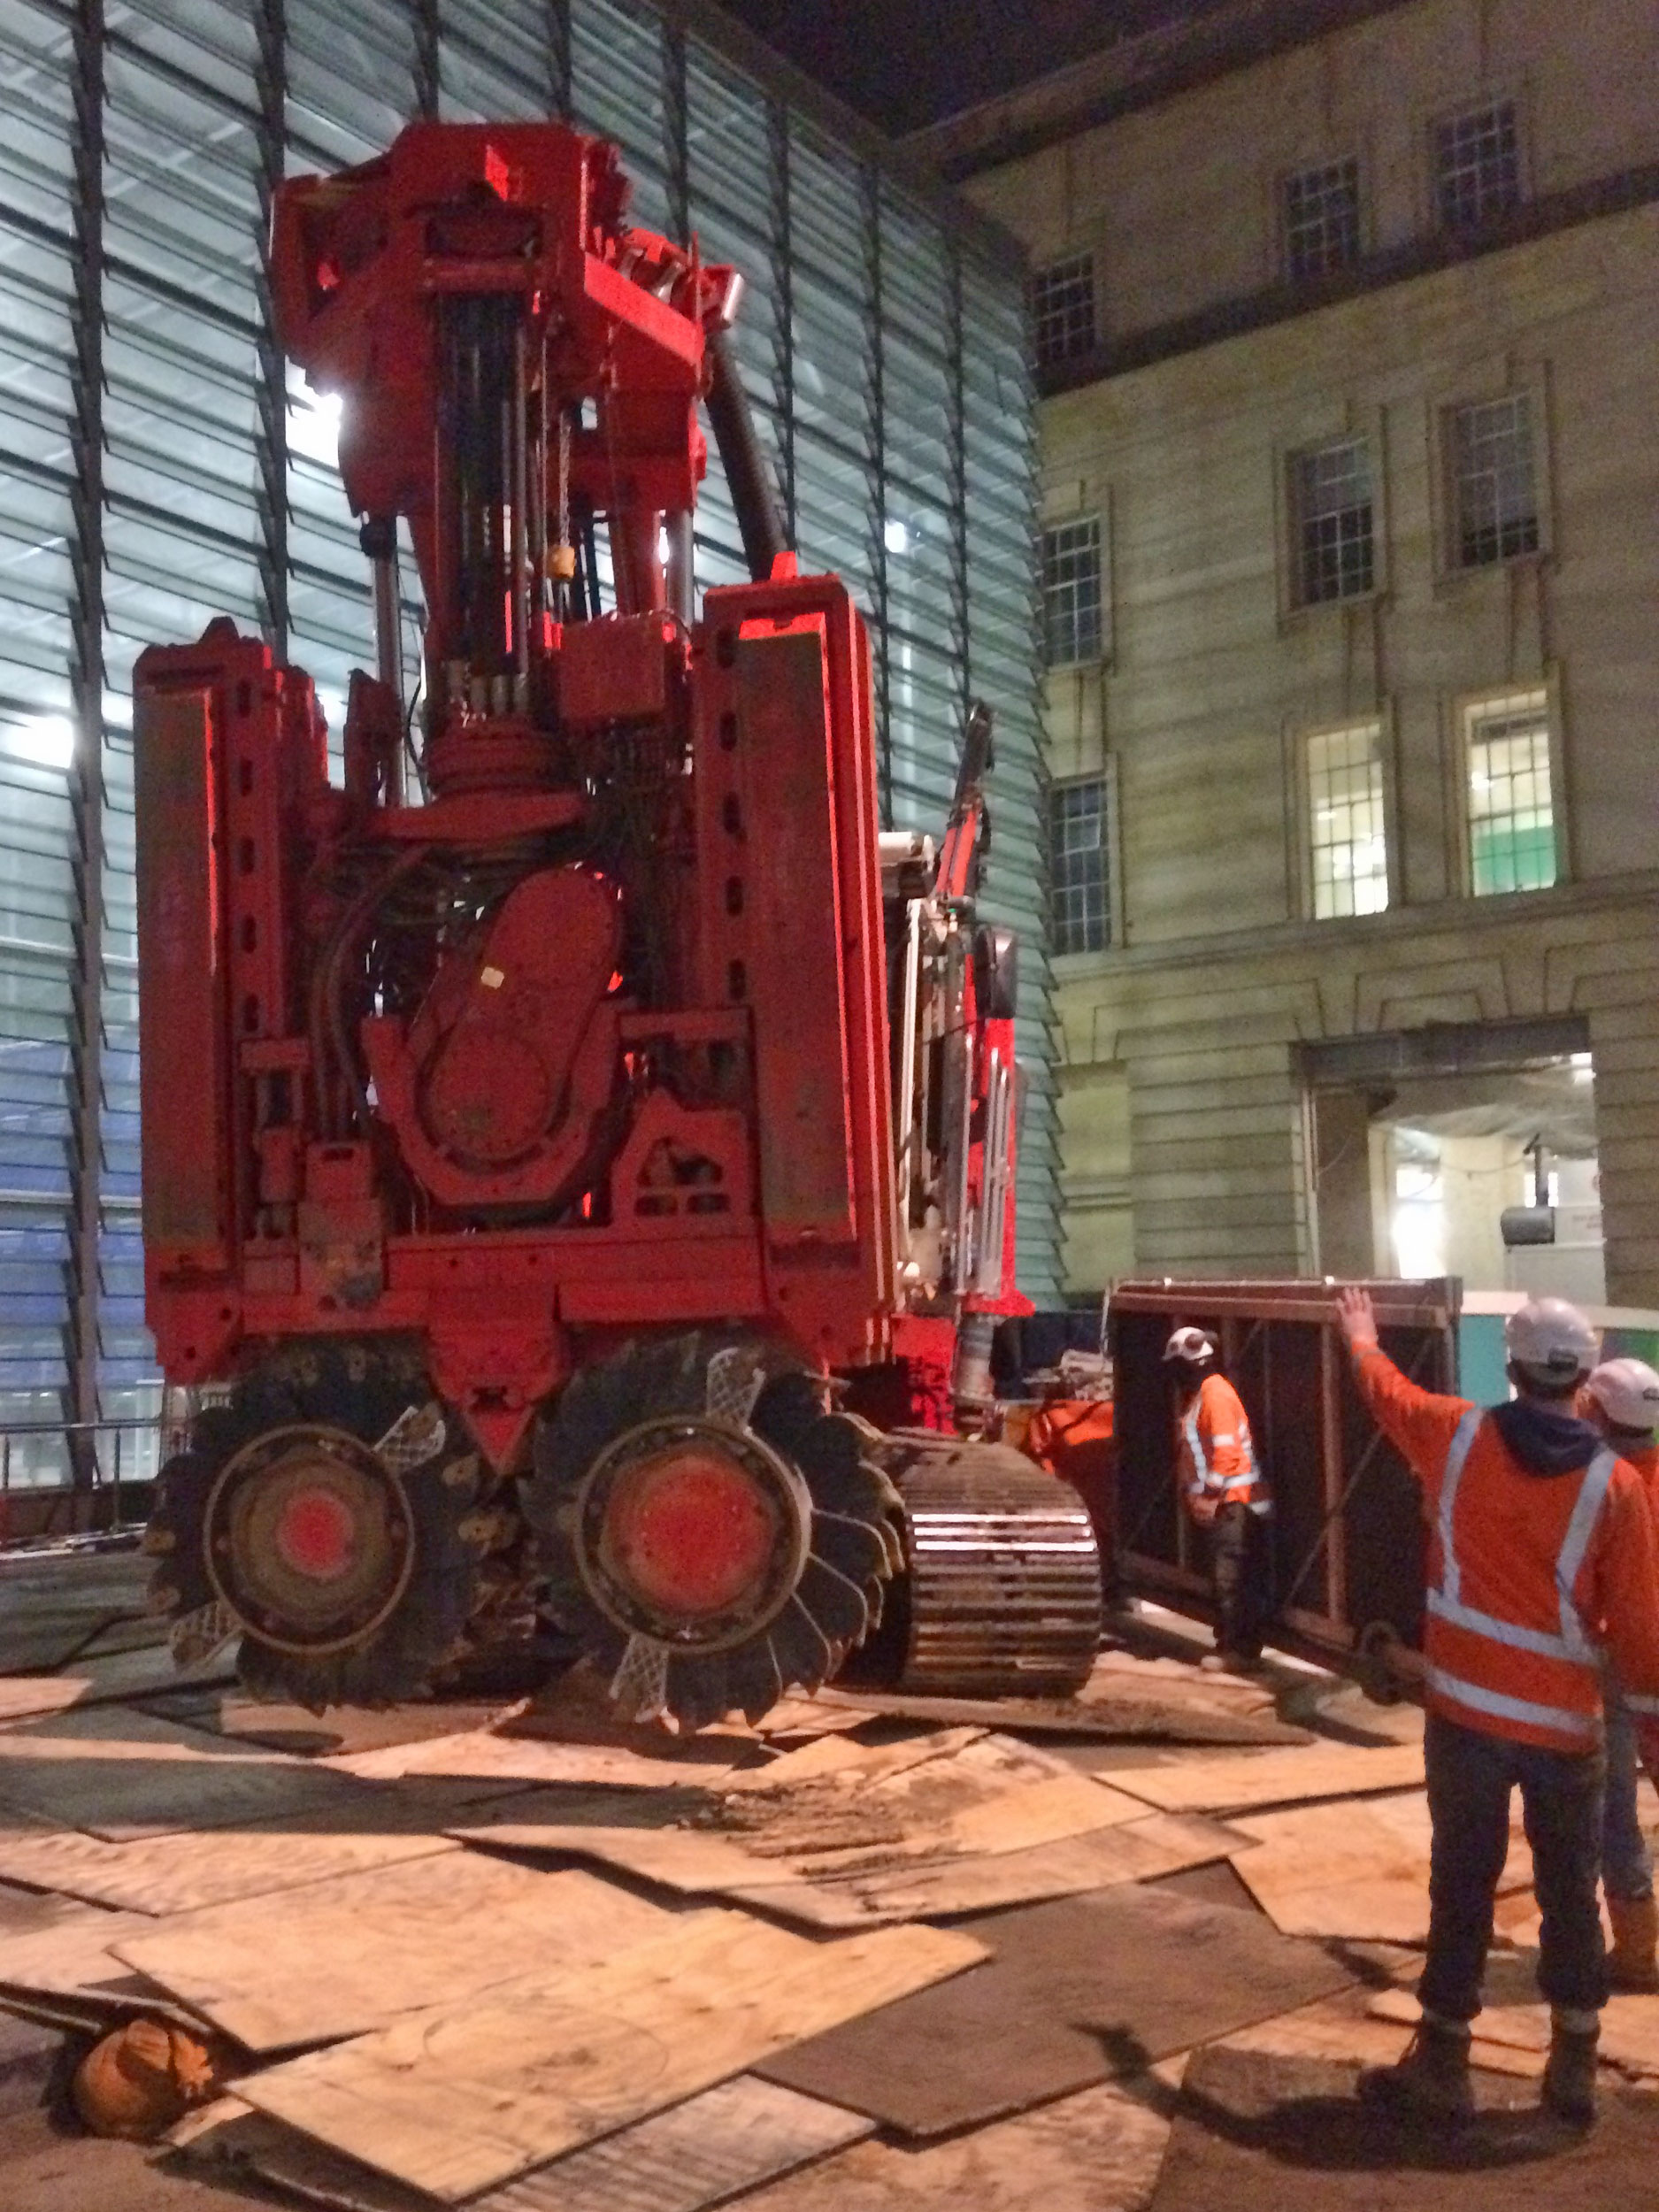 This bright red 90 tonne piling rig named Sandrine worked inside and outside the historic Chief Post Office (Britomart Transport Centre) building until being returned to France in early 2018. This is Sandrine being brought inside the building August 2017.